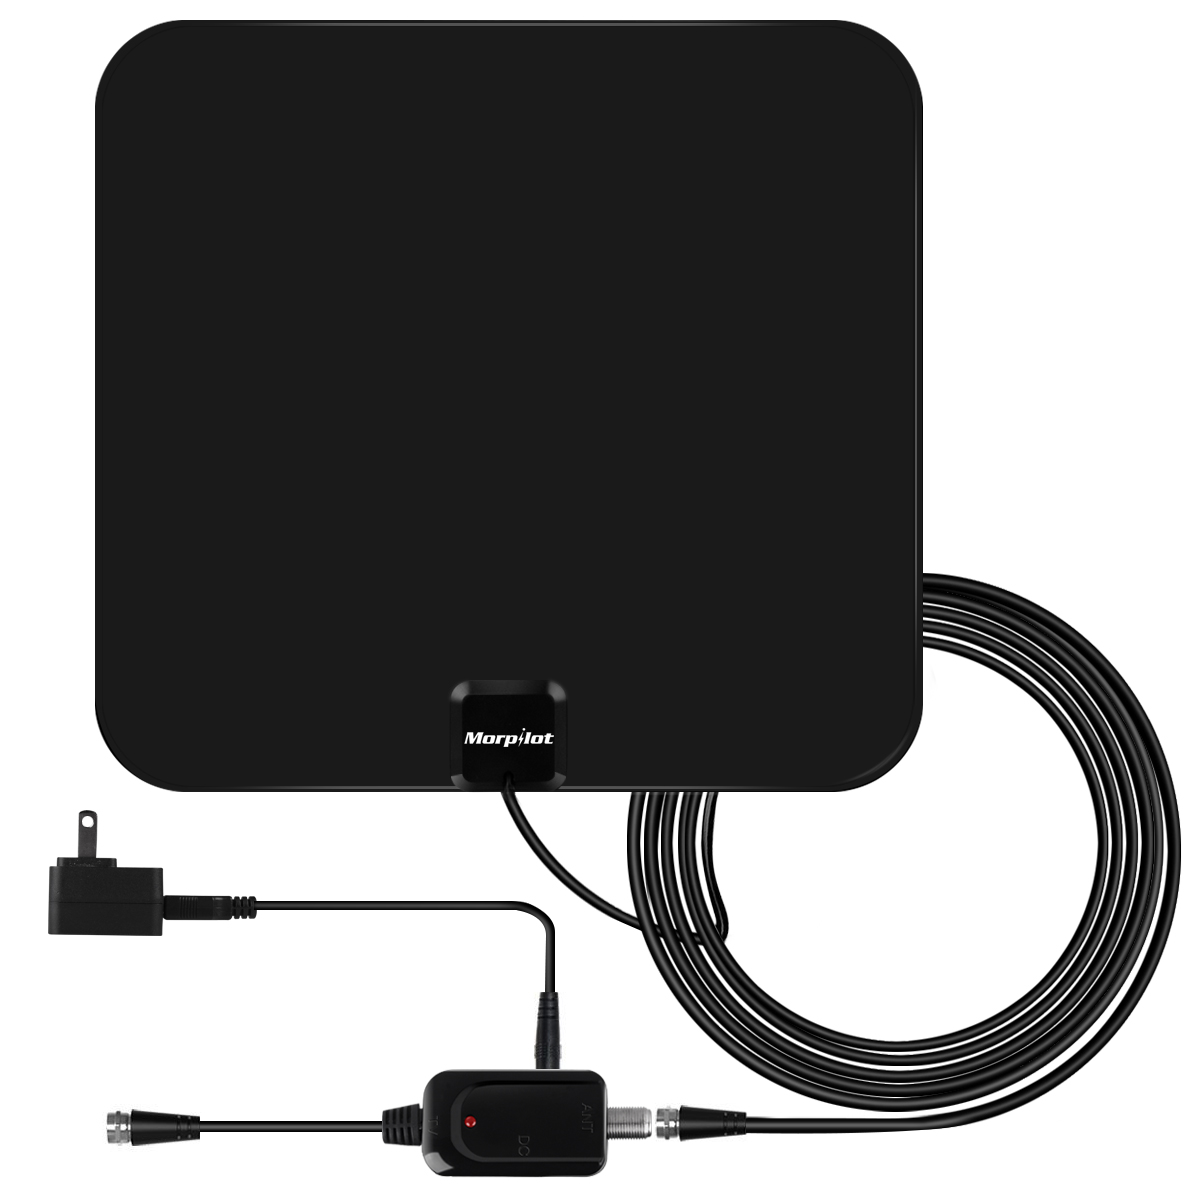 [NEWEST 2018] Amplified HD Digital TV Antenna with Long 60 Miles Range , Support 4K 1080p & All Older TV's for Indoor include Powerful HDTV Amplifier Signal Booster - 12ft Coax Cable / Power Adapter